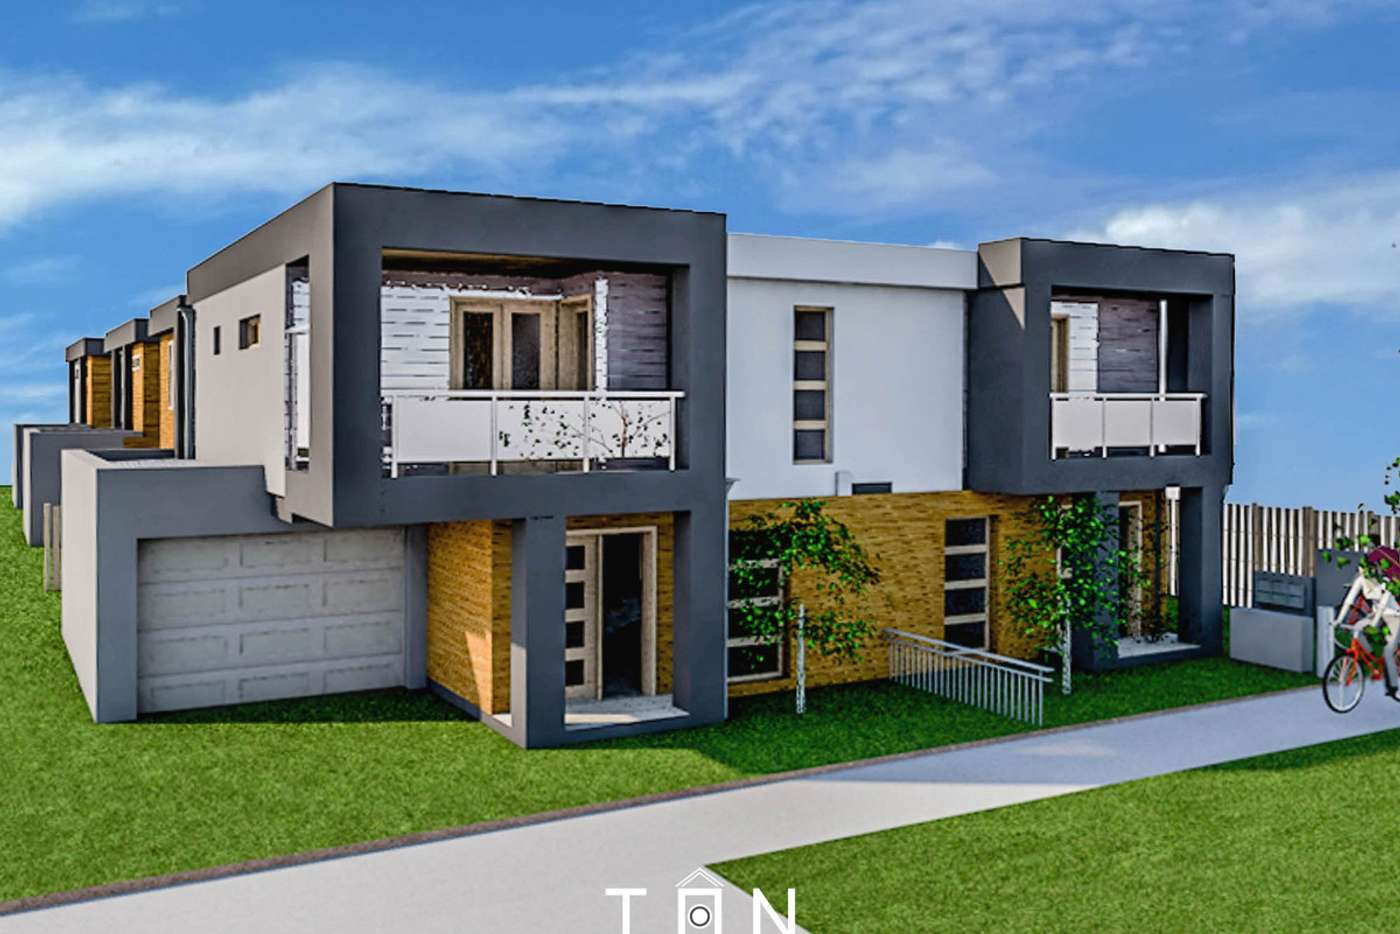 Main view of Homely townhouse listing, 3/43 Bakewell Street, Cranbourne VIC 3977